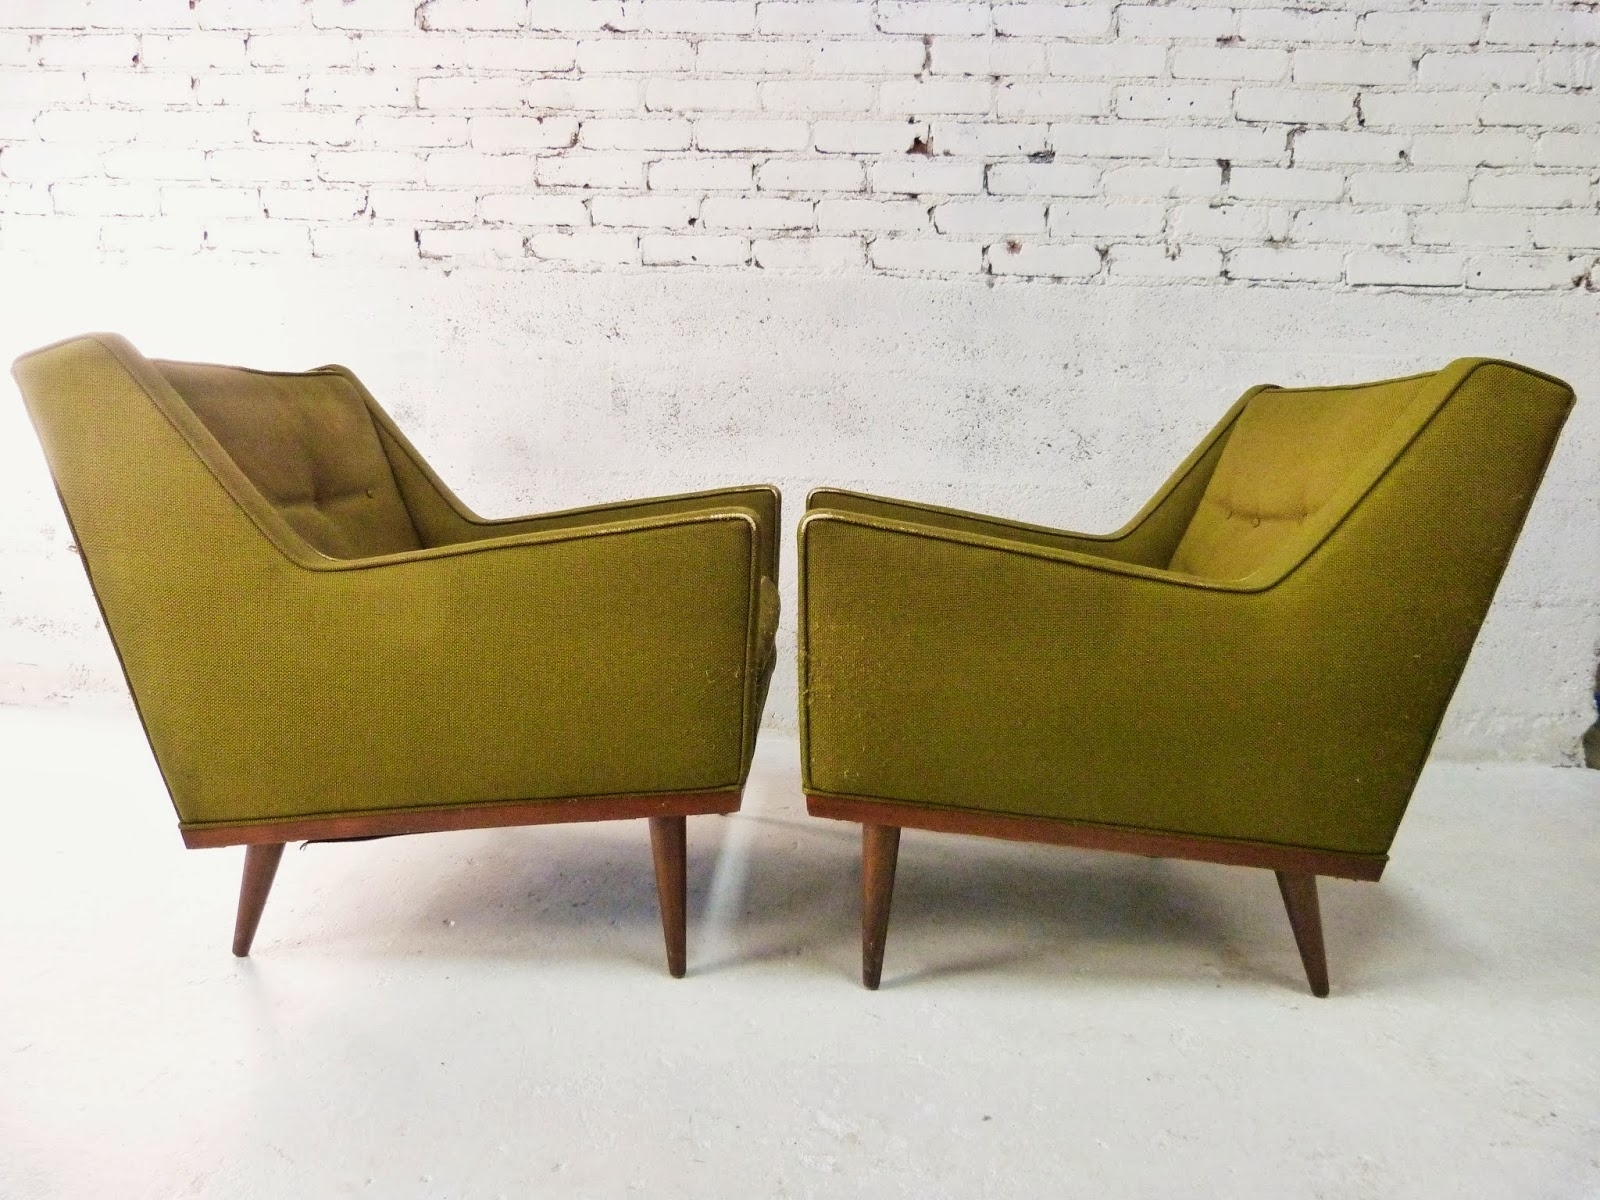 2019 Modern Retro Furniture For Retro Sofas And Chairs (View 3 of 20)